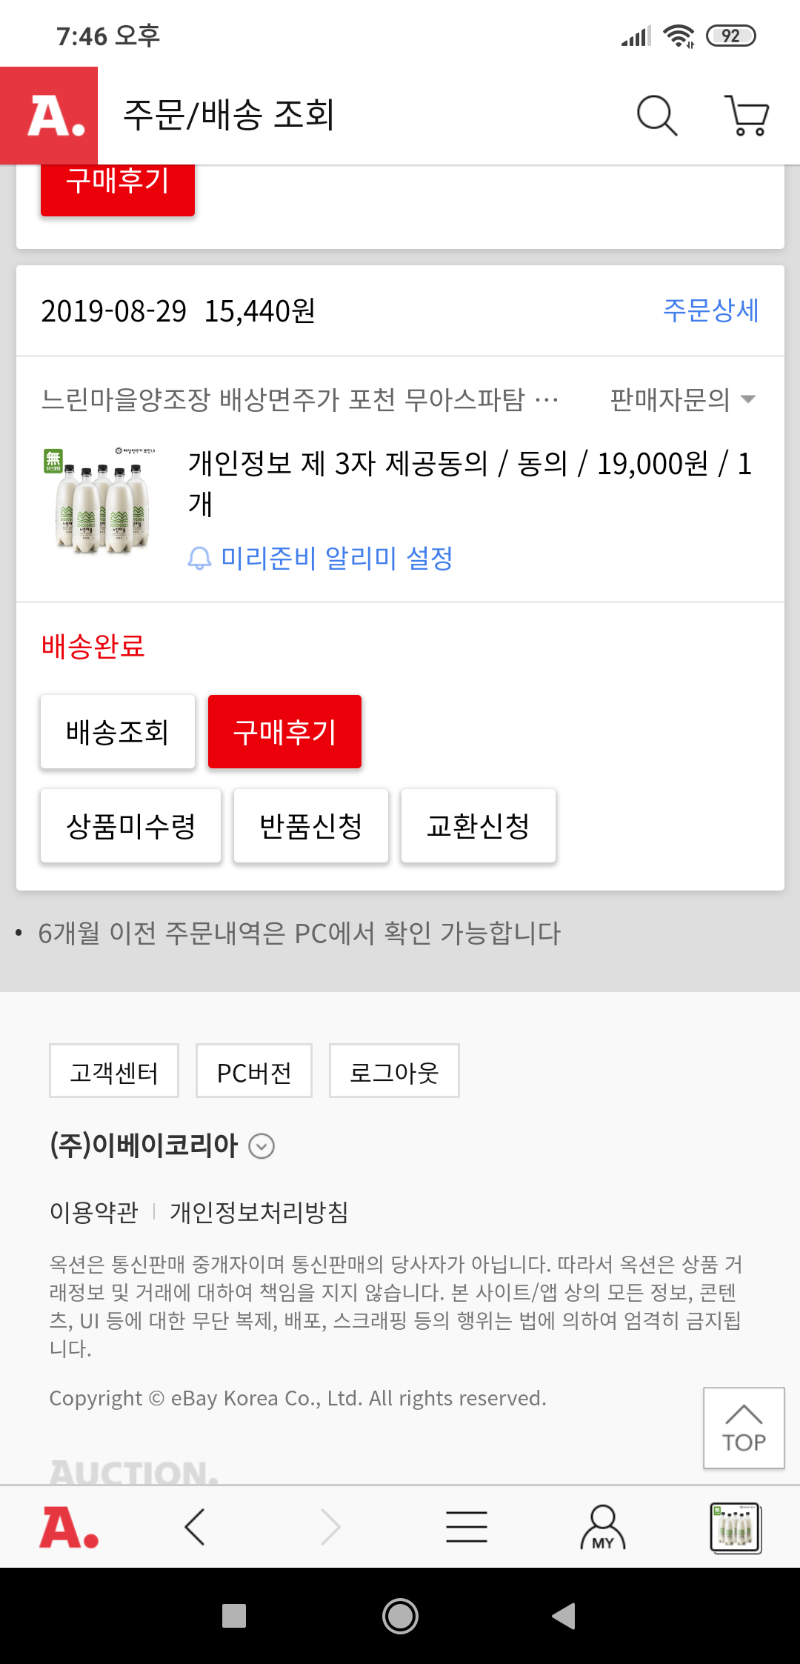 Screenshot_2019-09-10-19-46-22-714_com.ebay.kr.auction.png